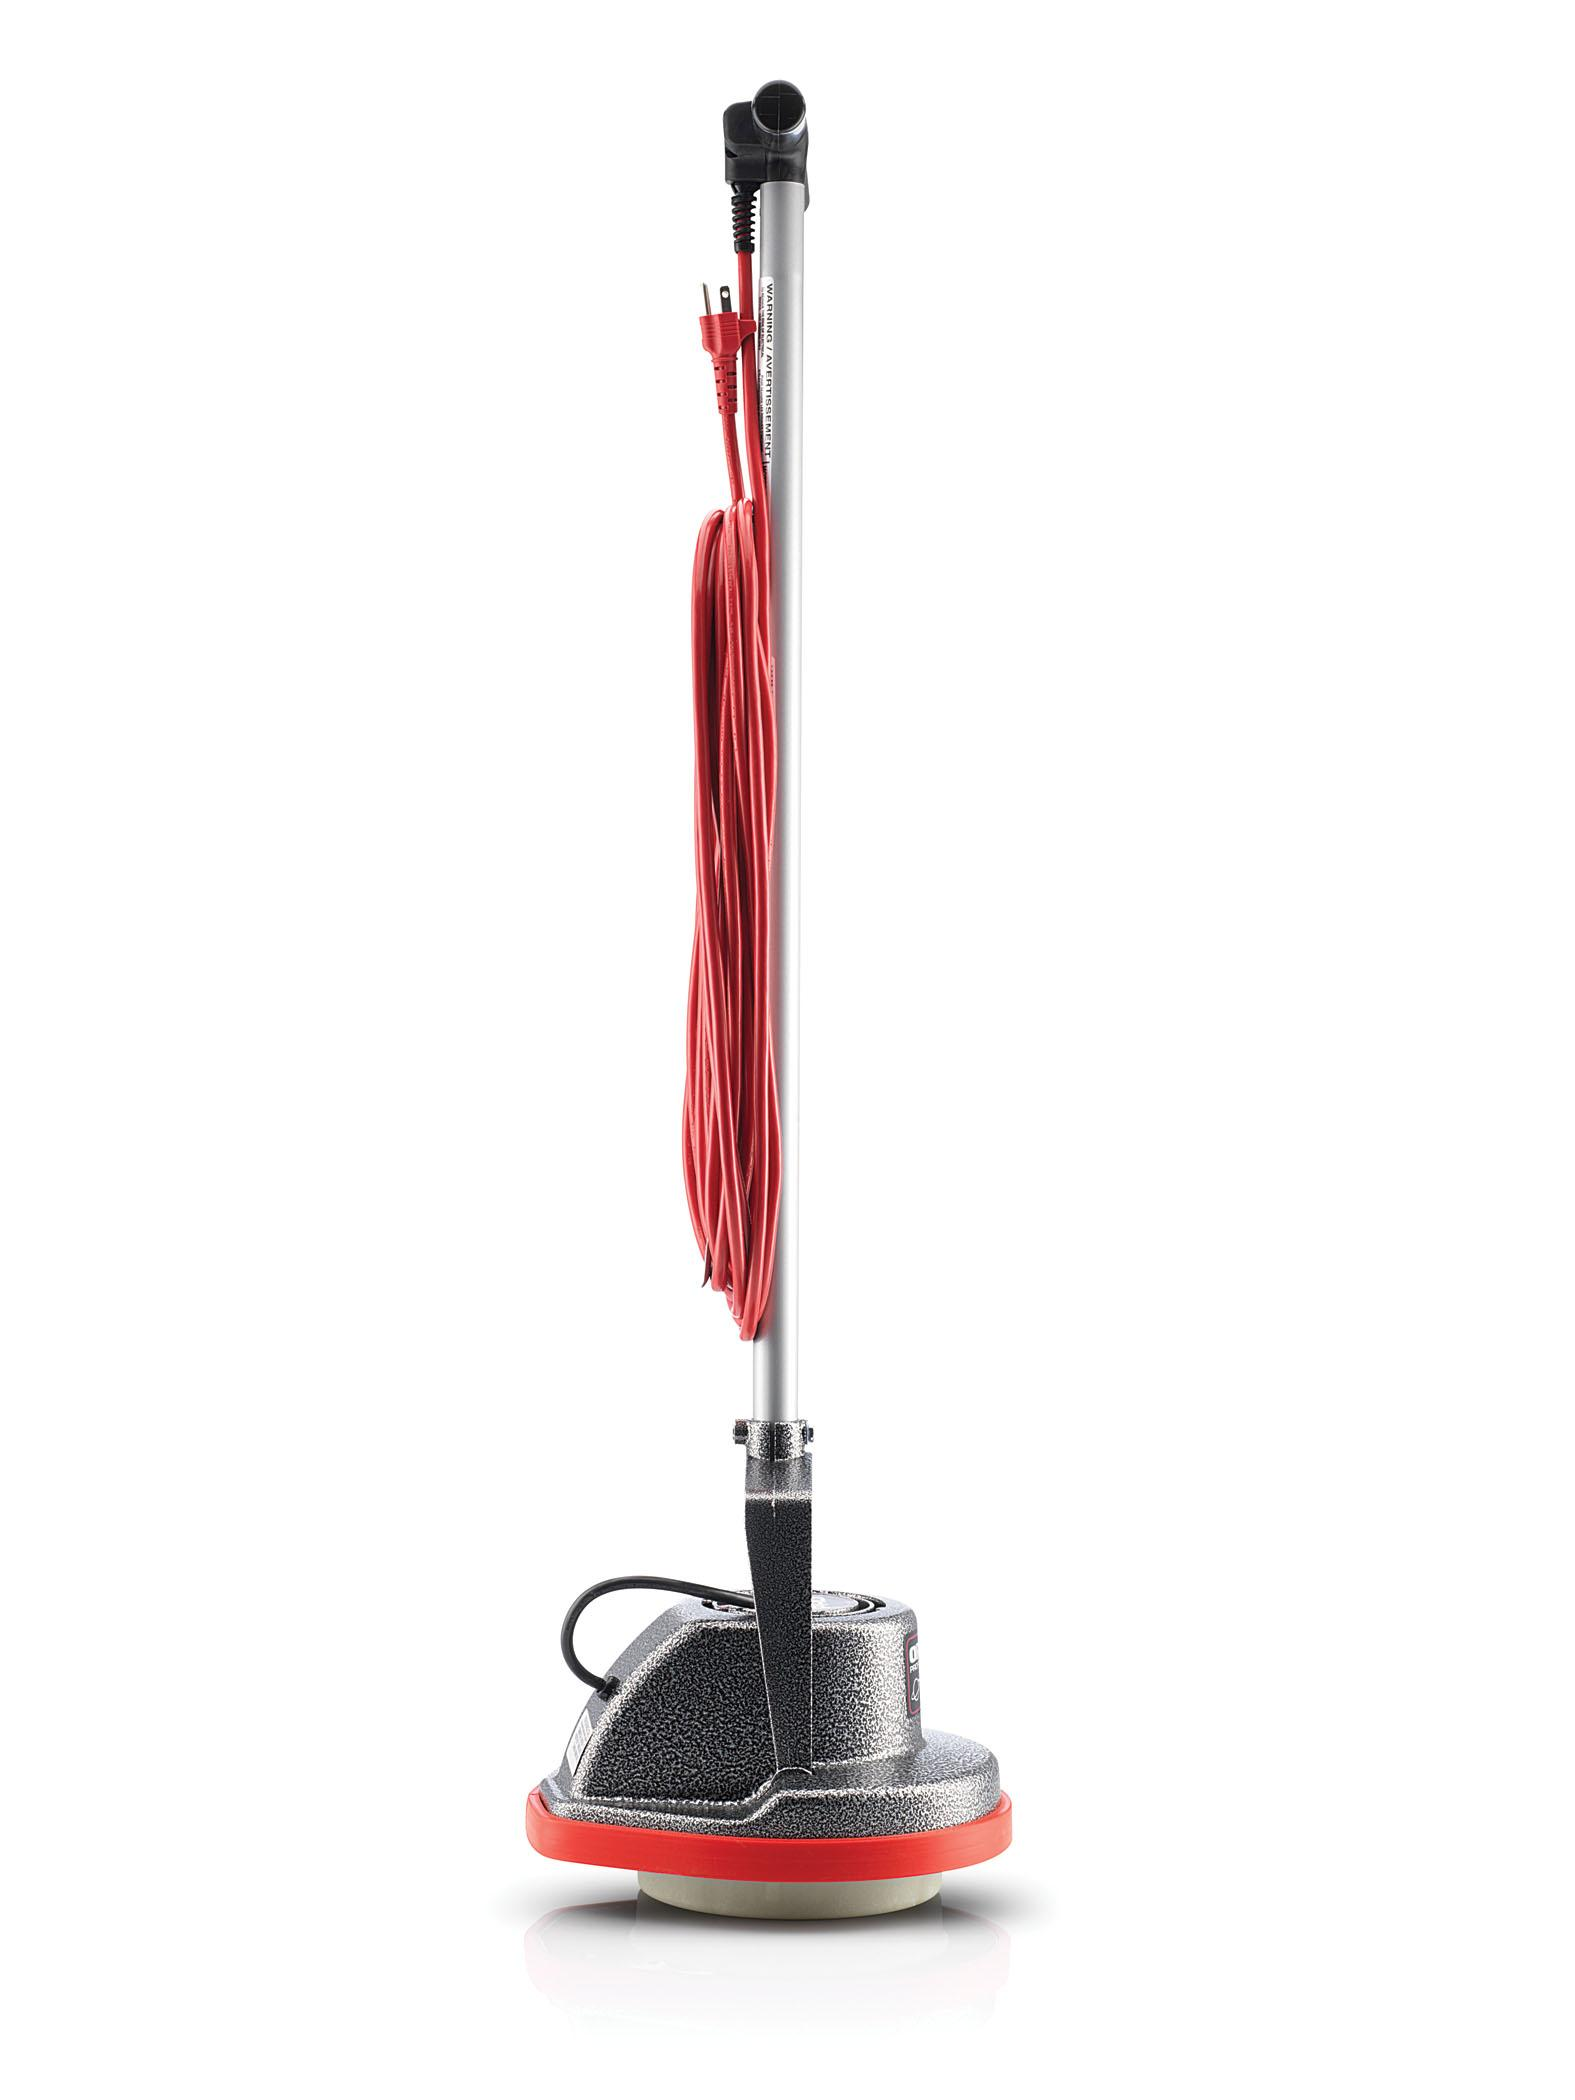 oreck commercial orb550mc orbiter floor machine 13 cleaning path 50 cord